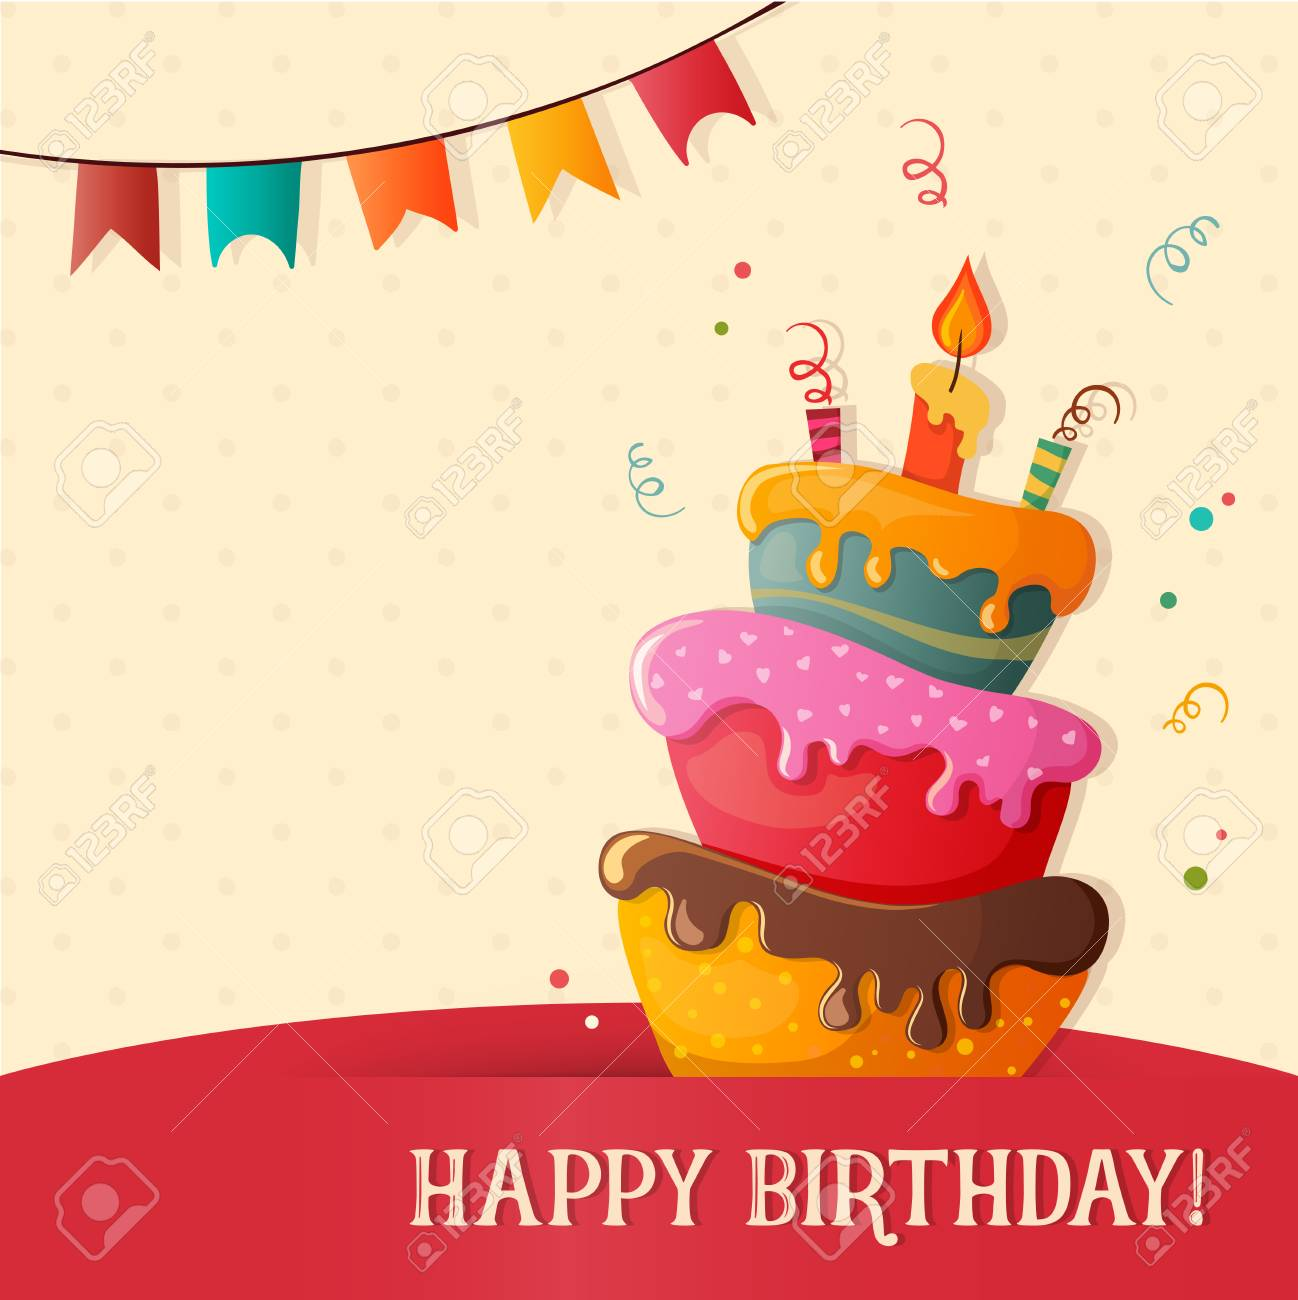 Happy Birthday Greeting Card Template Vector Illustration Royalty